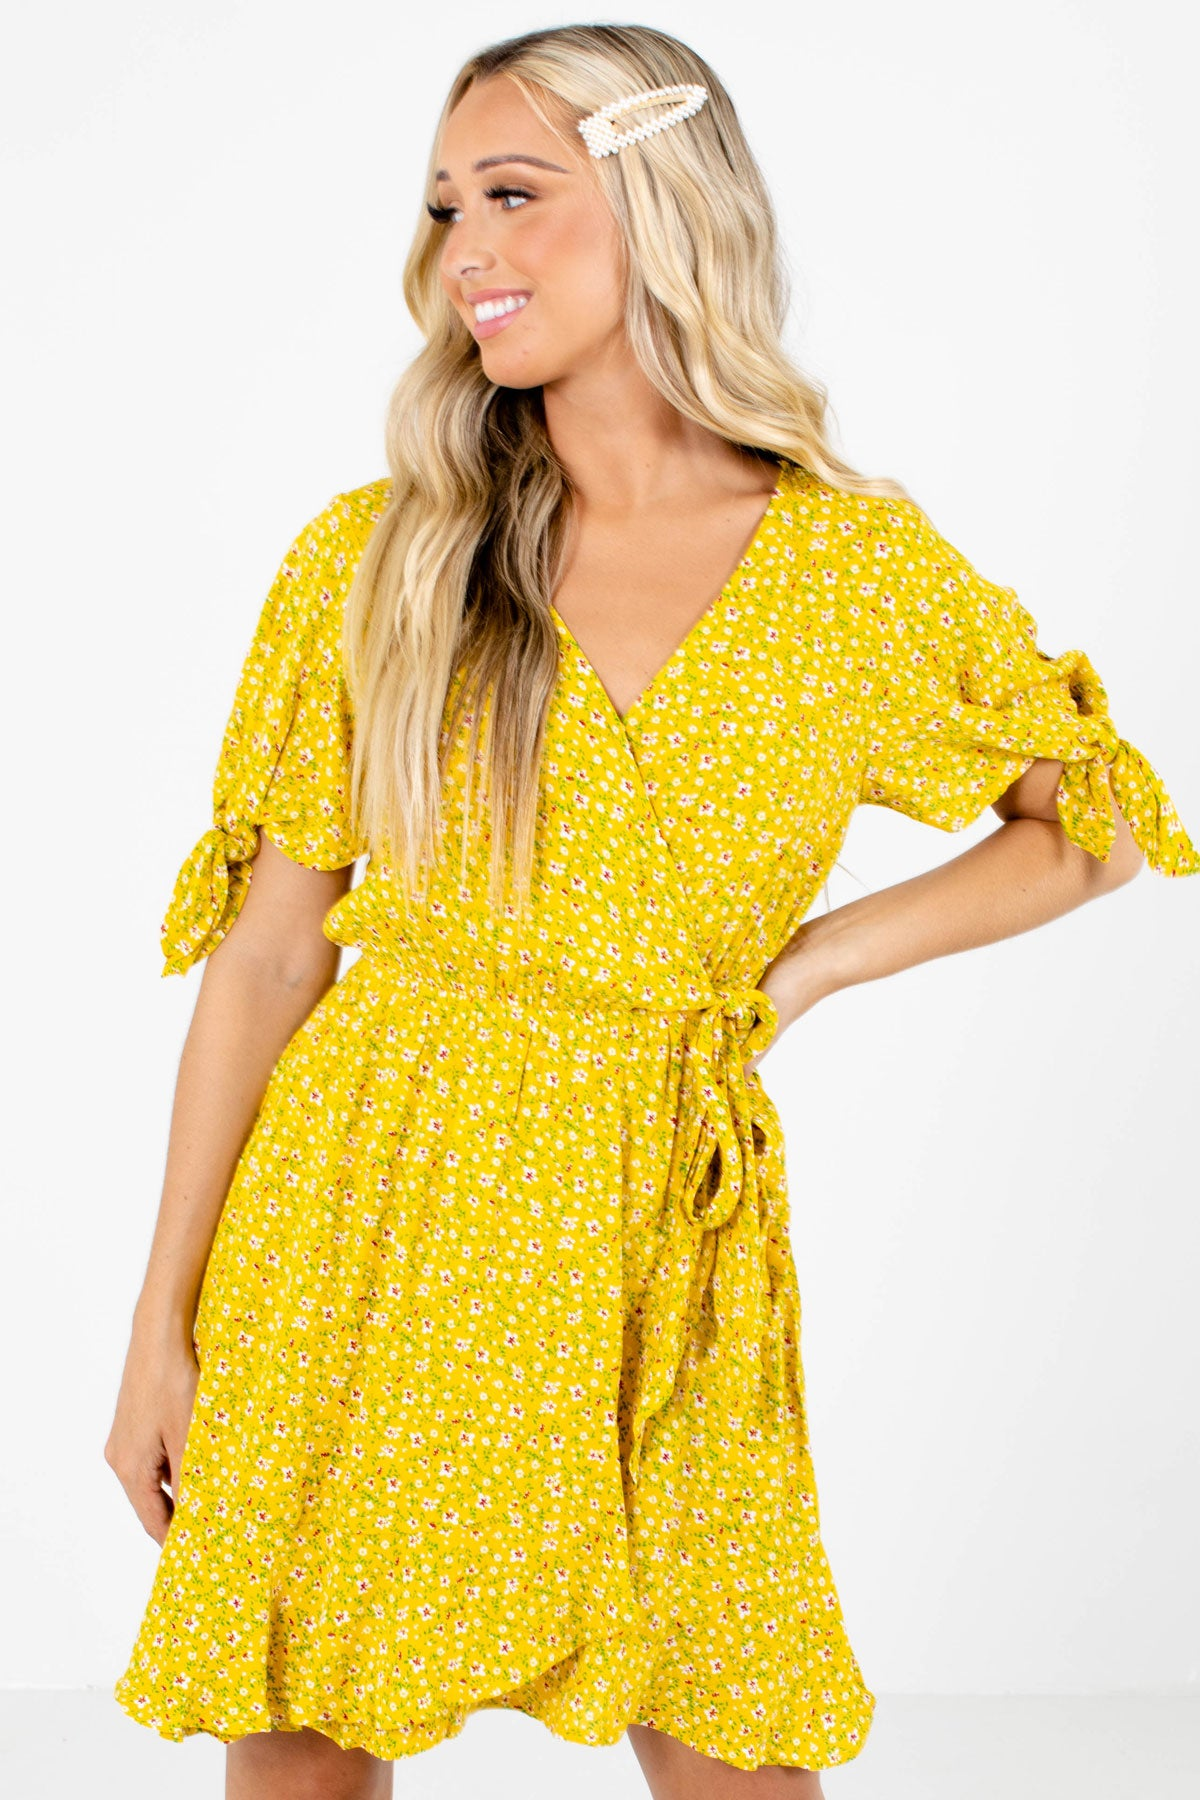 Yellow Multicolored Floral Patterned Boutique Clothing for Women